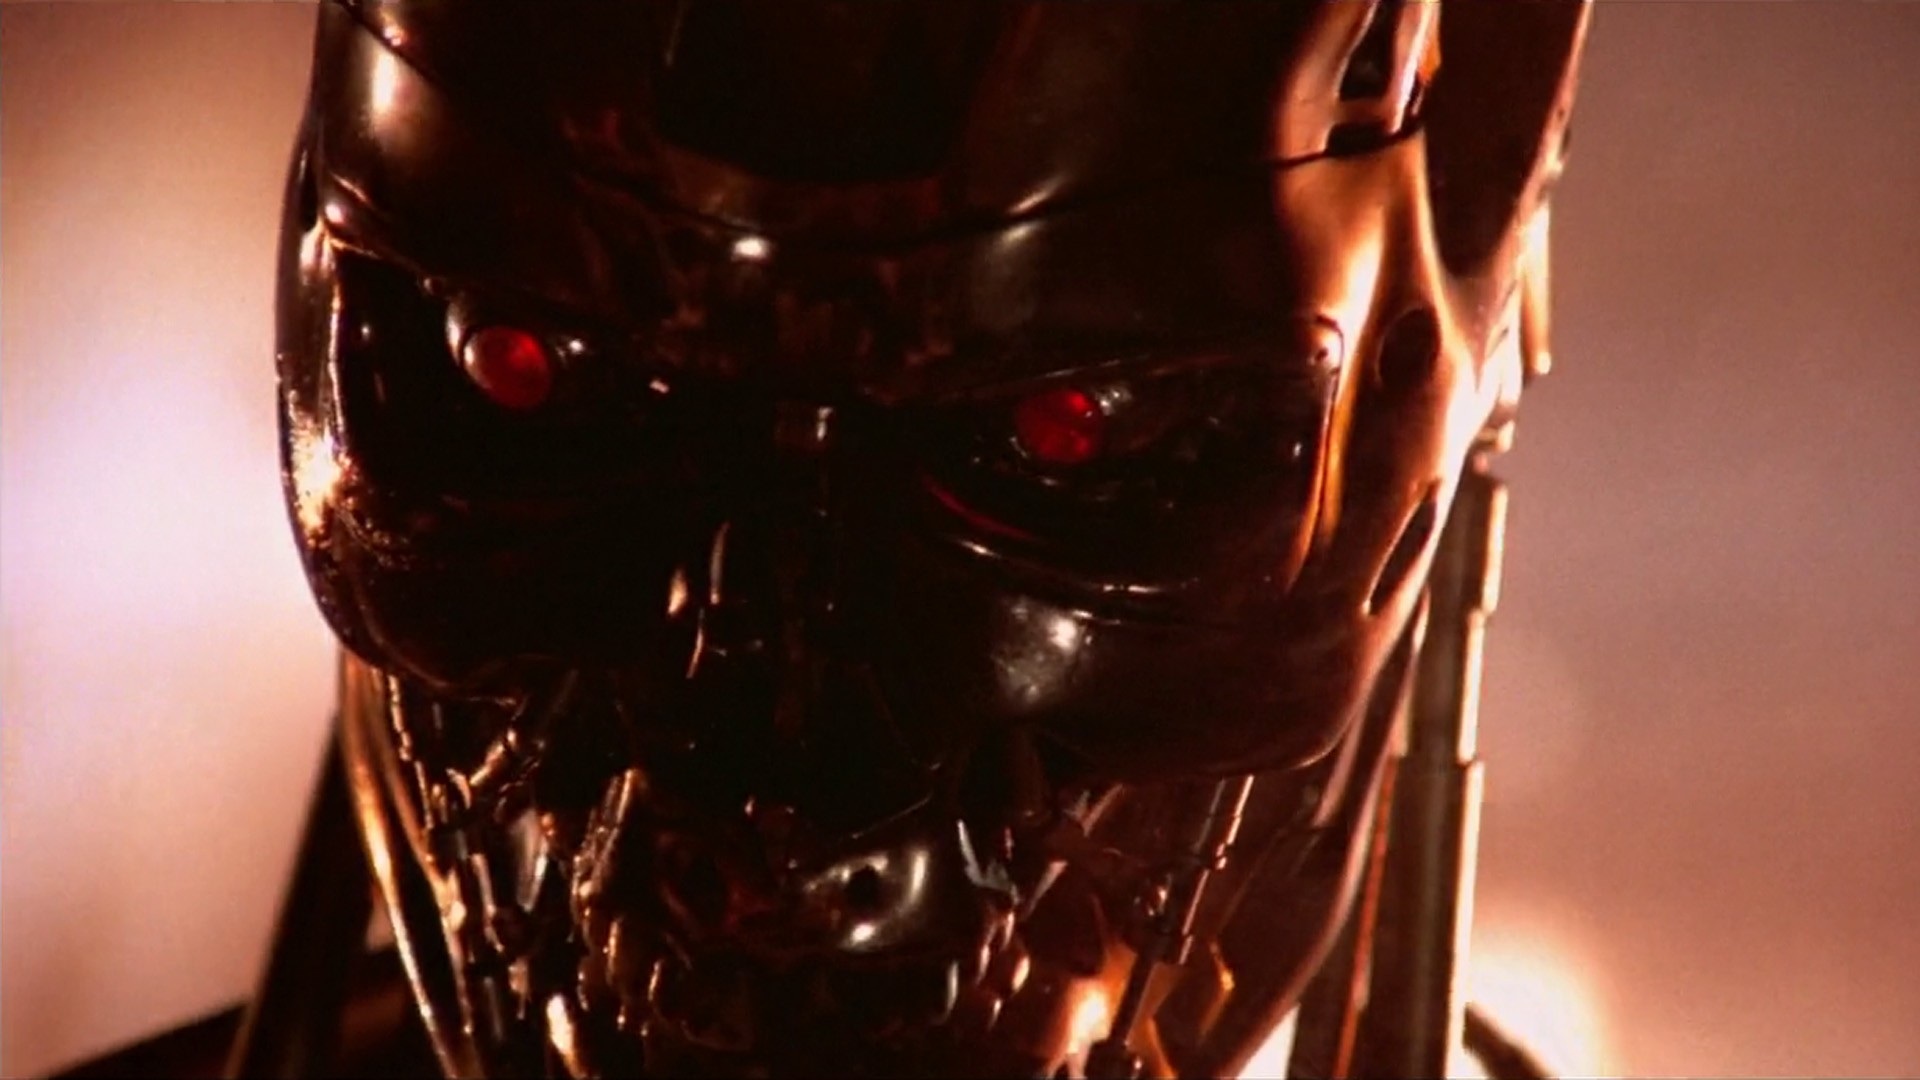 The Terminator Movies terminator HD Wallpaper